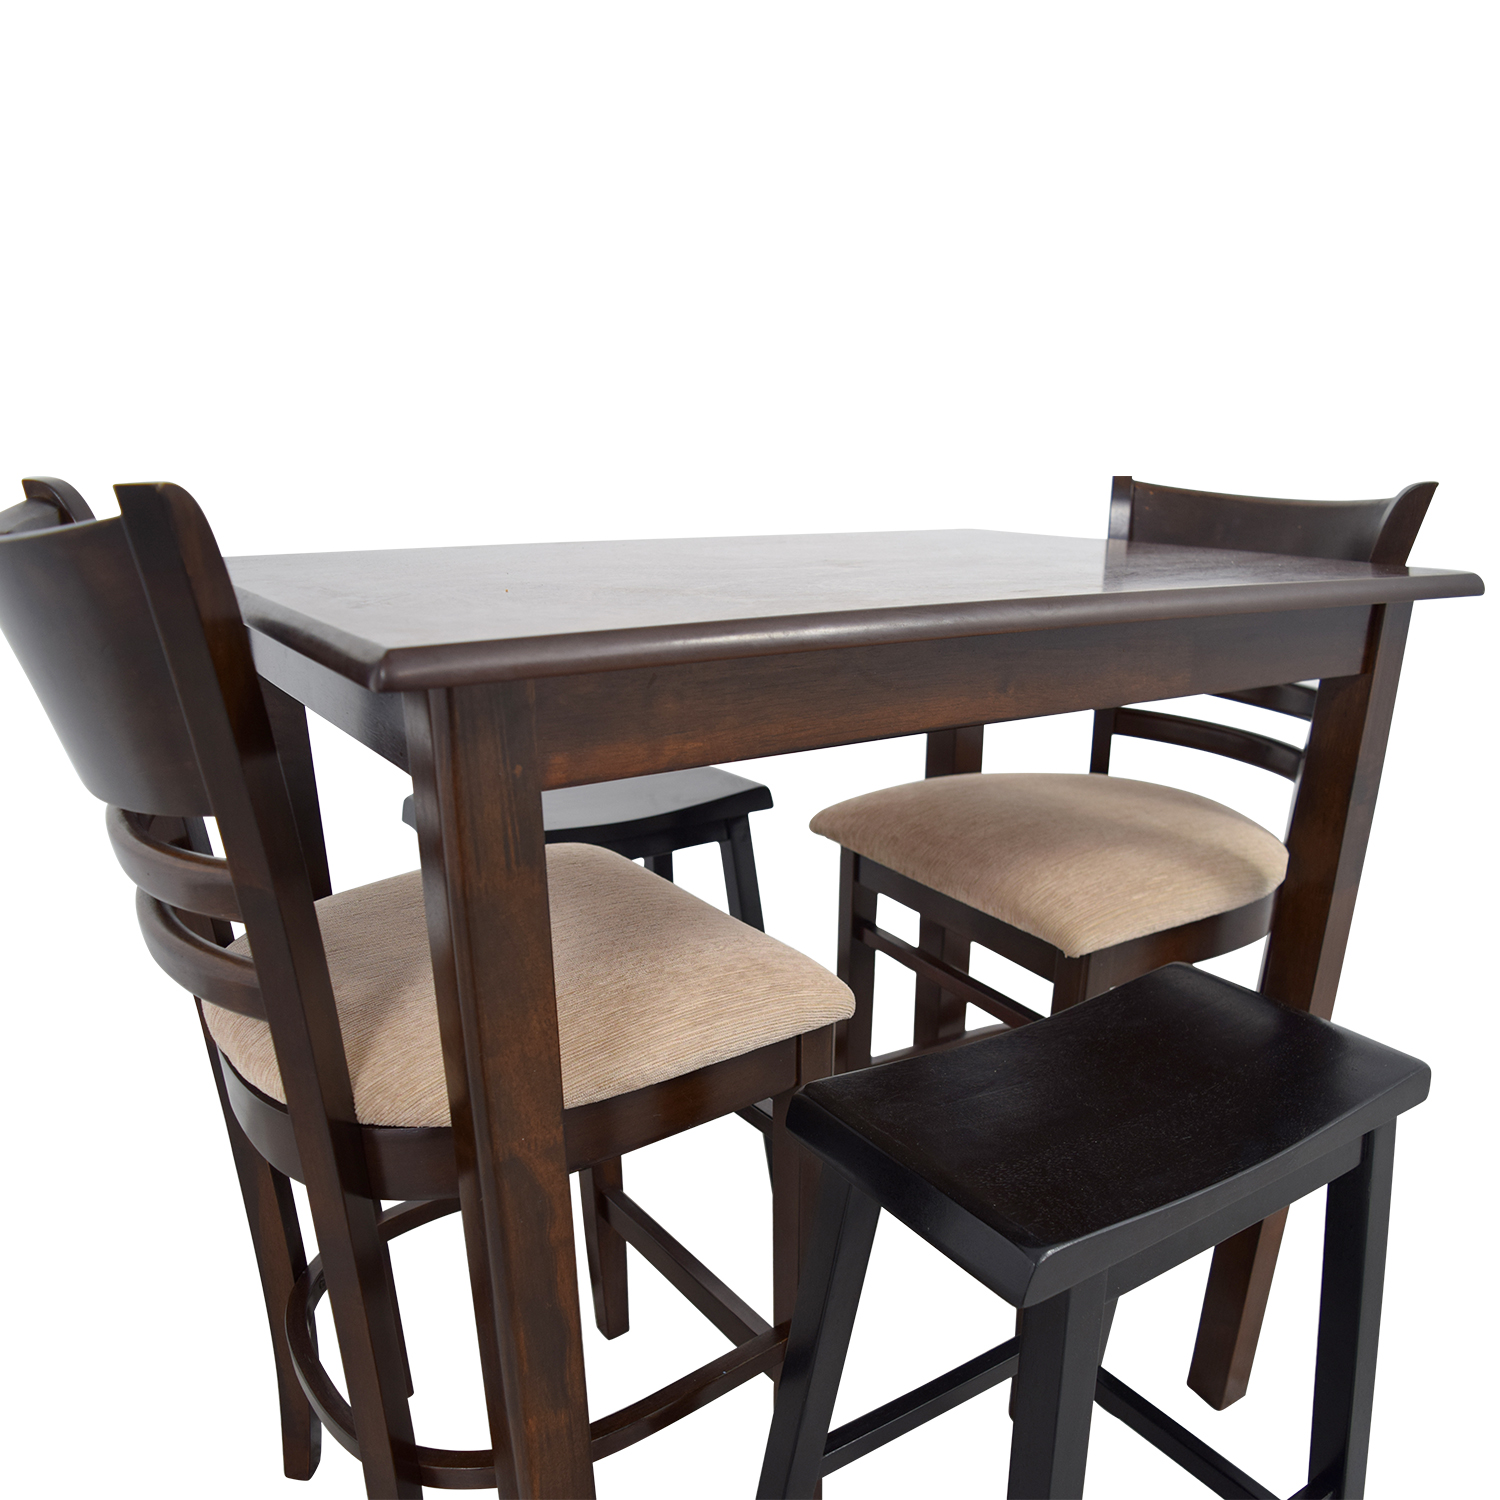 buy Simple Bar Table with Two Chairs and Two Stools Dining Sets